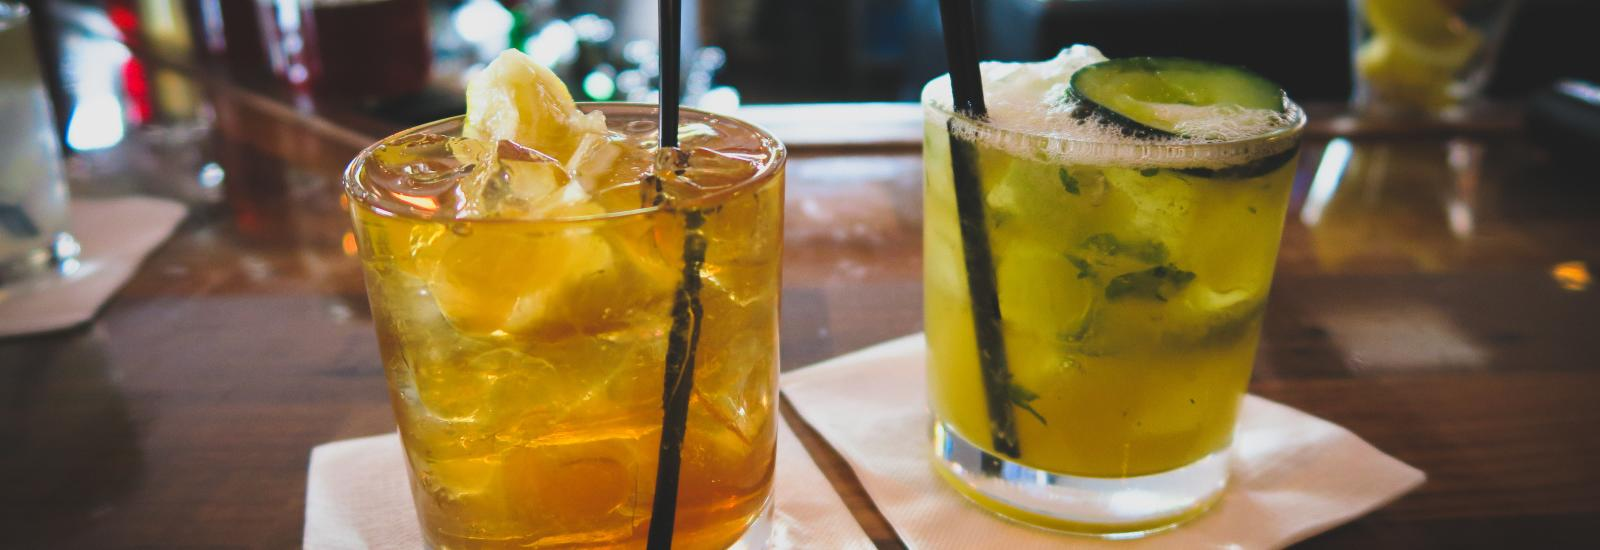 Libations: cocktails, wine, beer and spirits in Punta Gorda/Englewood Beach